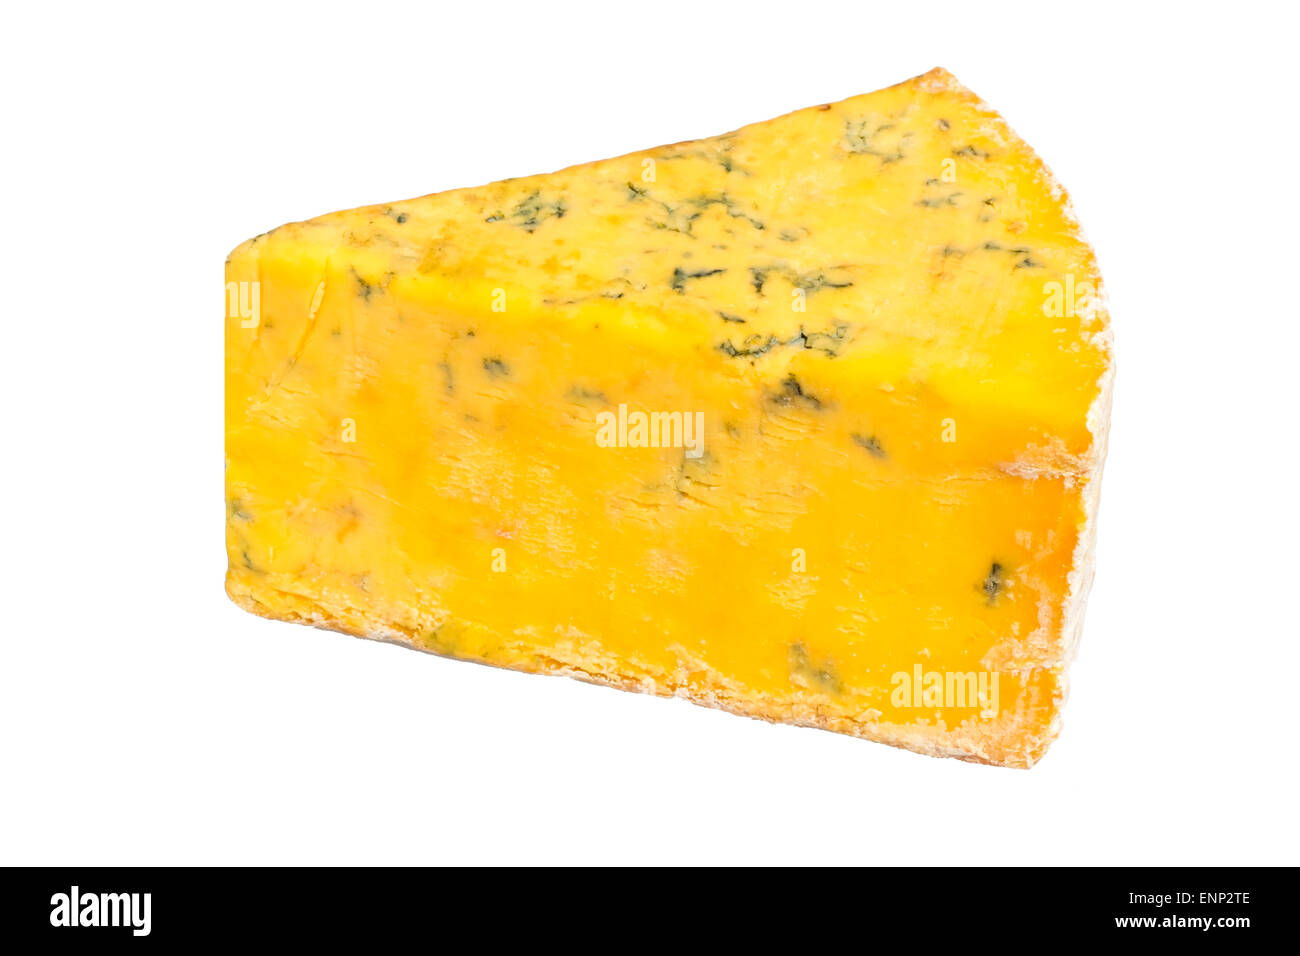 Shropshire blue cheese cut out or isolated on a white background, UK. - Stock Image